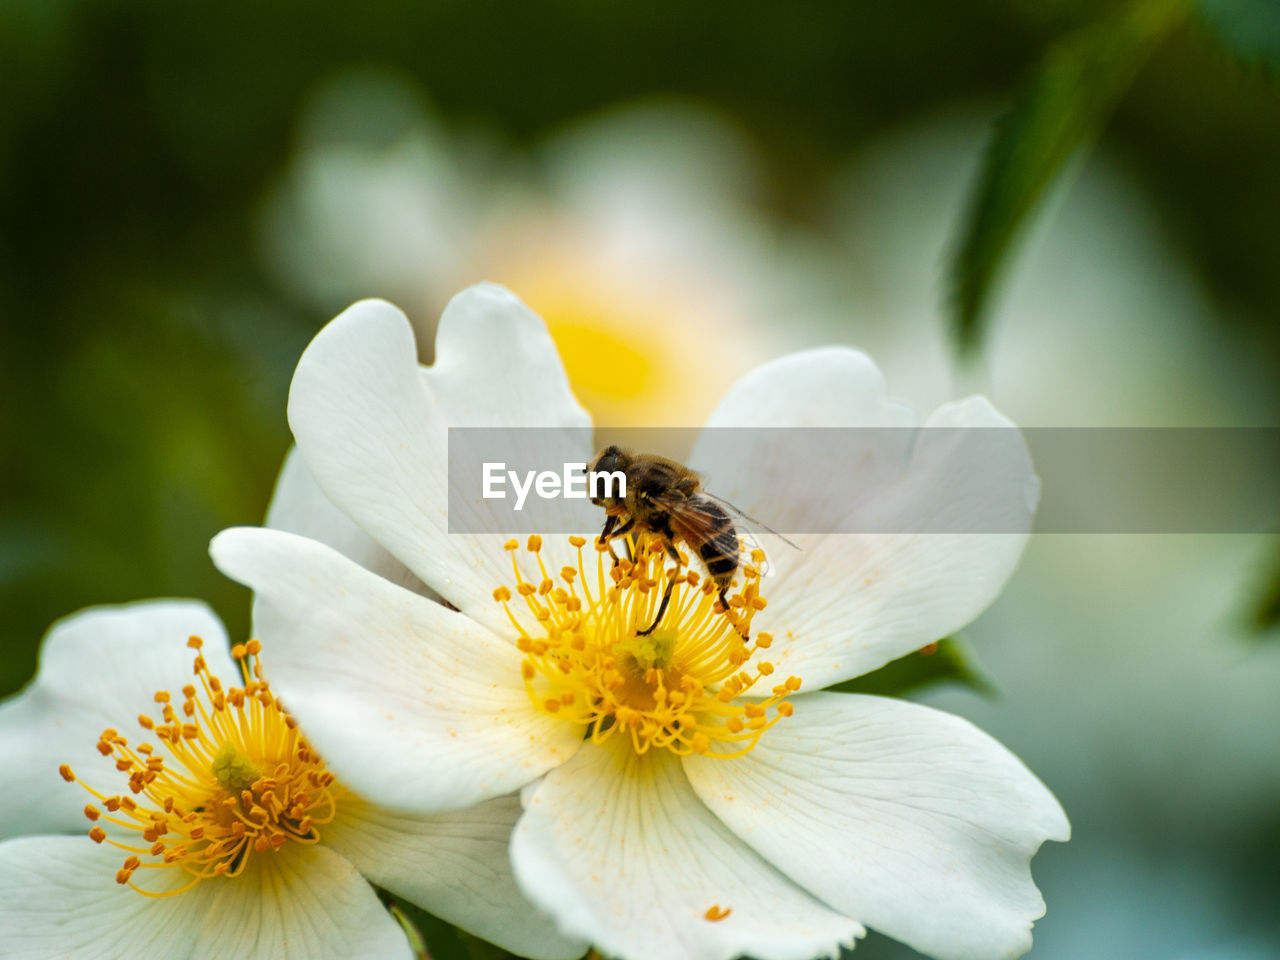 flower, flowering plant, fragility, invertebrate, petal, vulnerability, beauty in nature, freshness, insect, animal, animal themes, flower head, plant, animal wildlife, animals in the wild, growth, close-up, one animal, pollen, bee, pollination, no people, outdoors